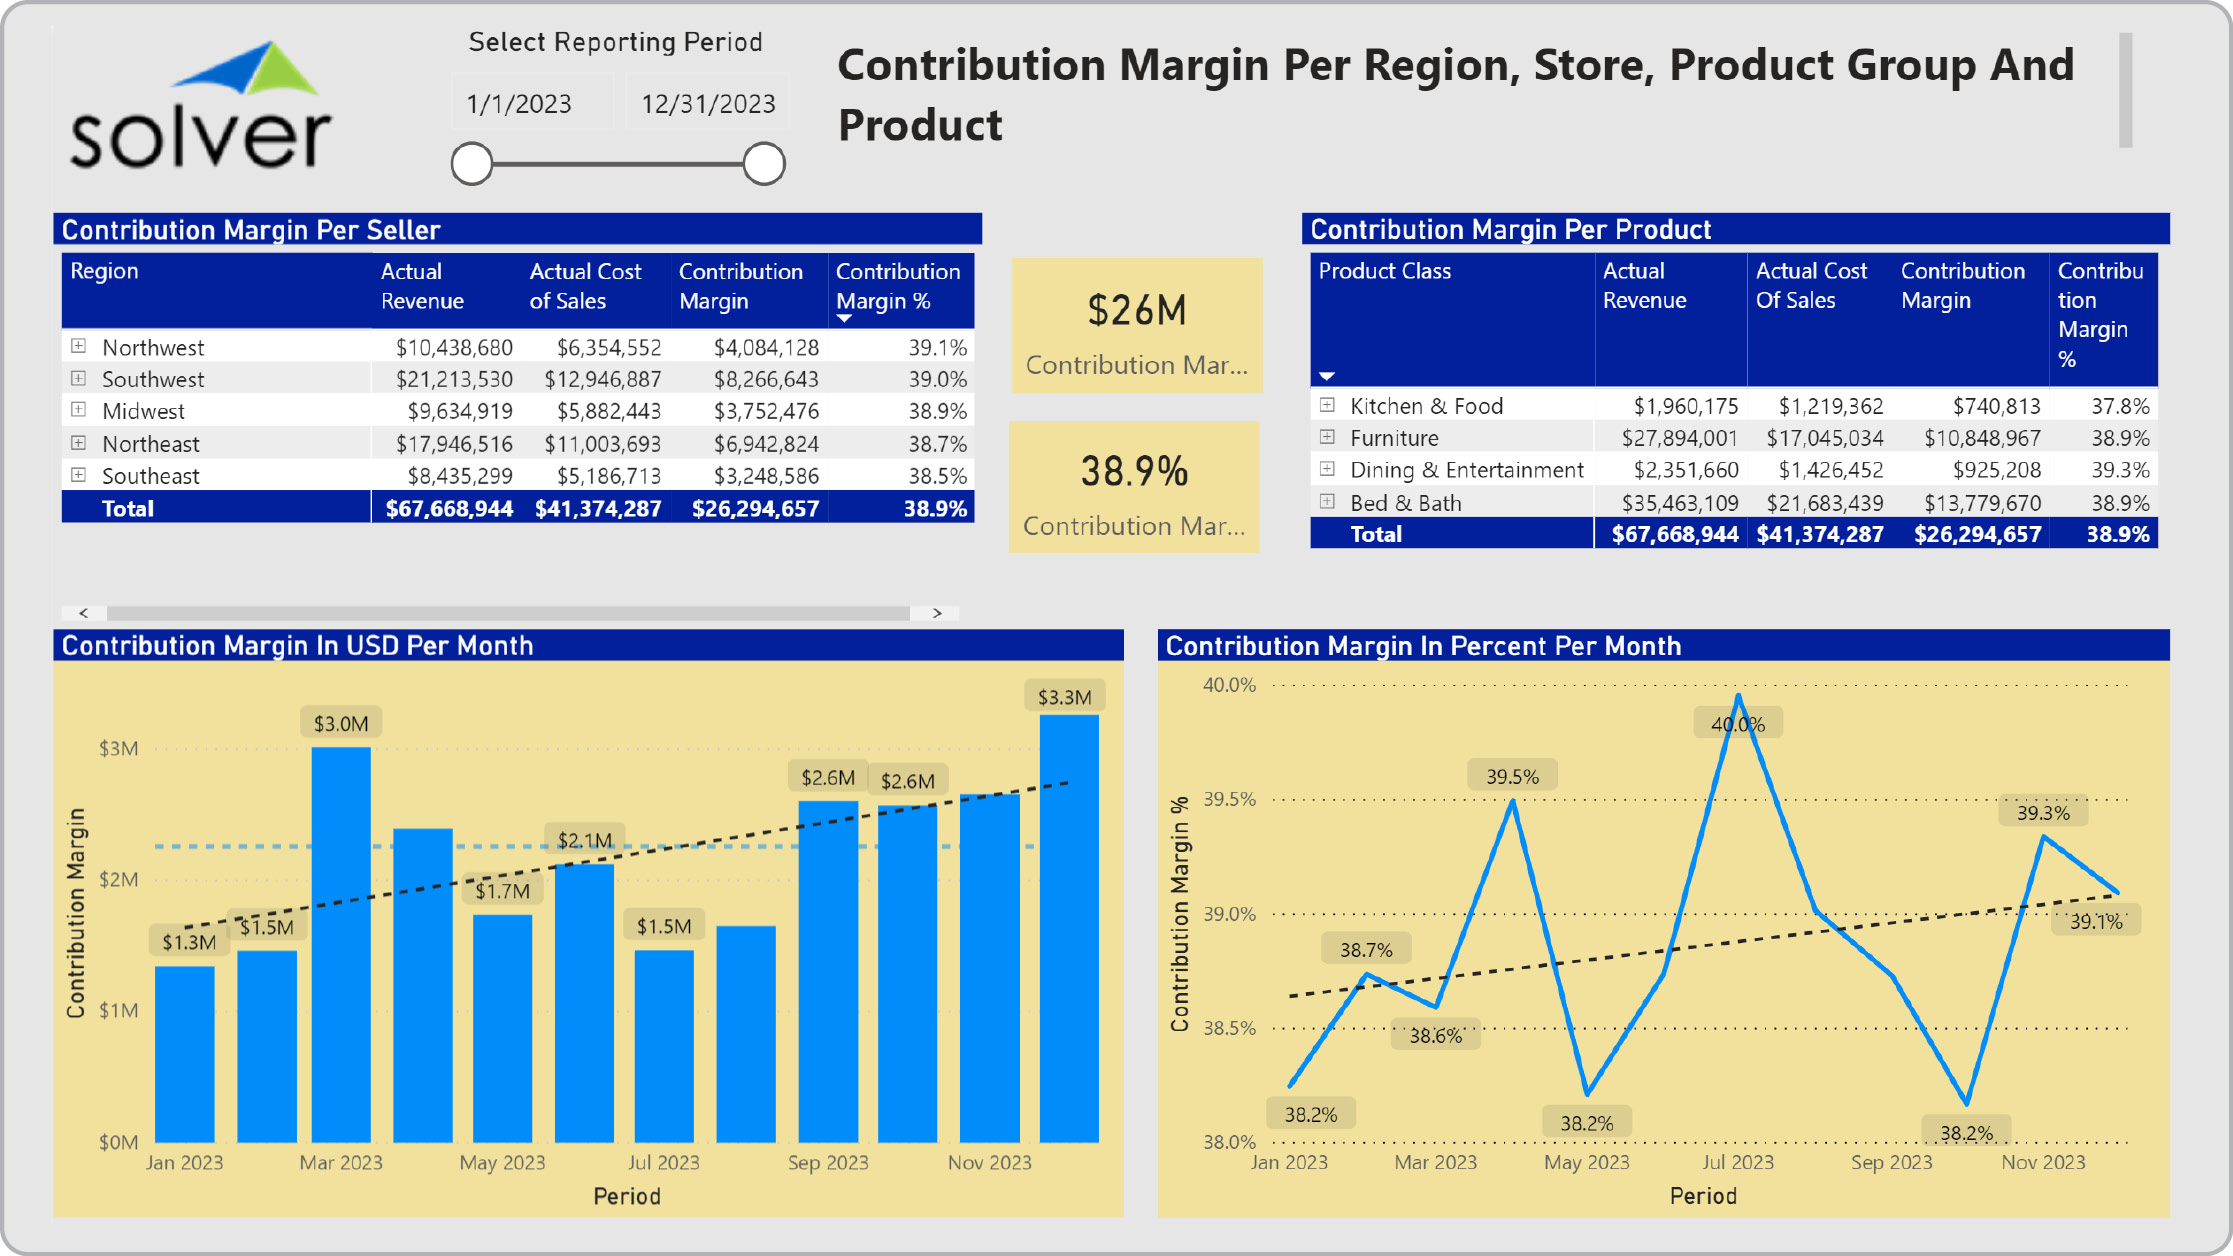 Retail – Contribution Margin